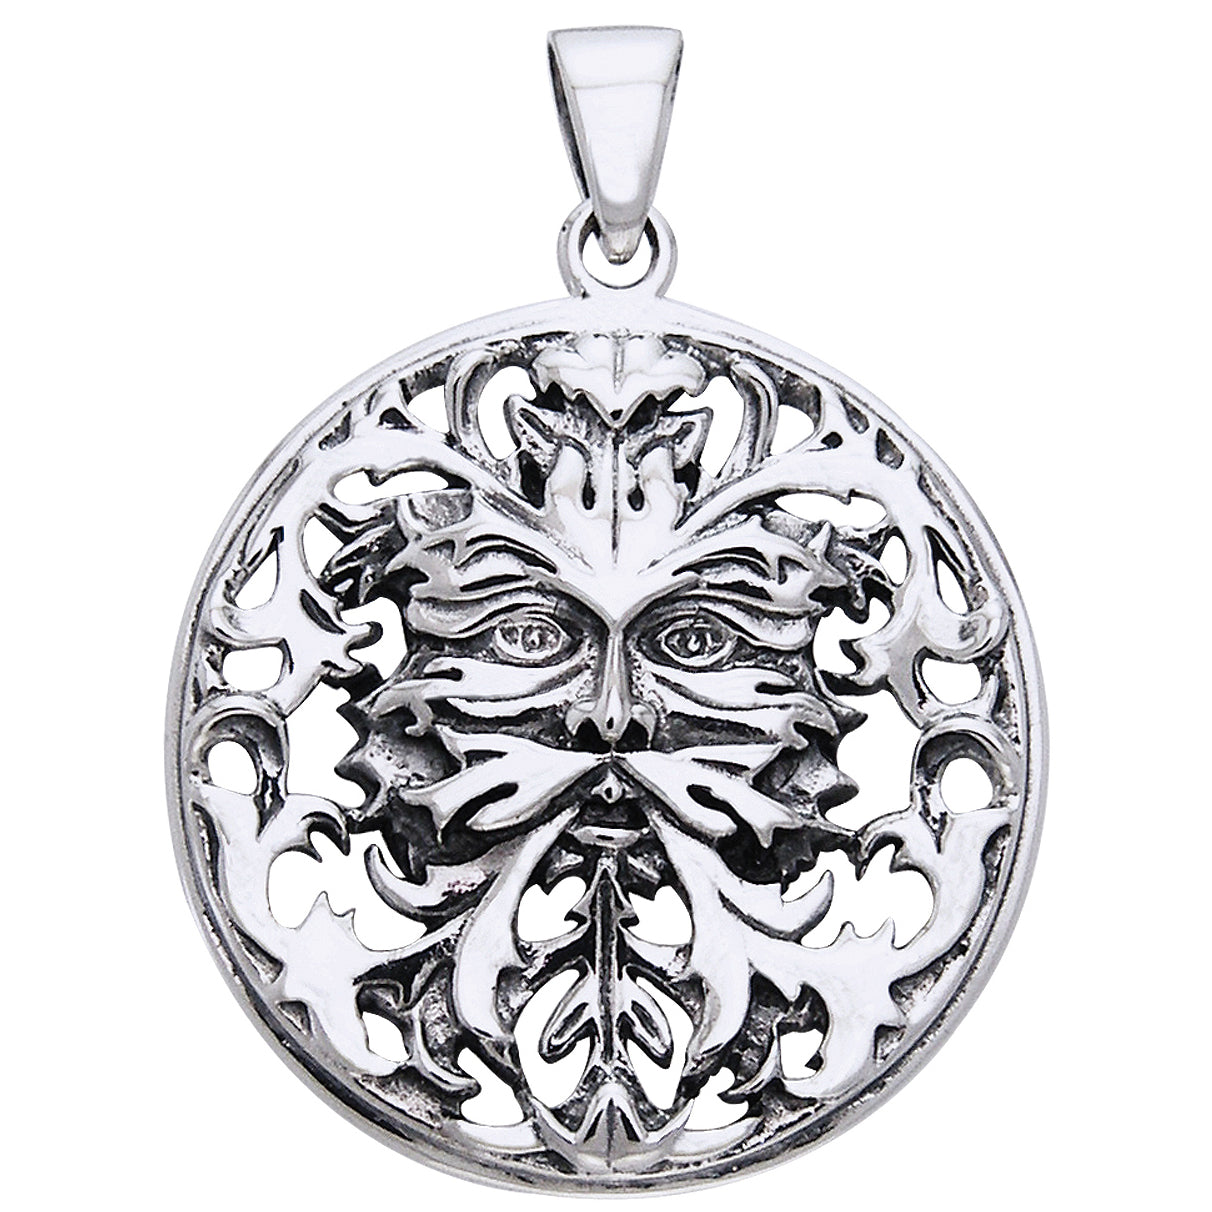 Woodland Spirit - Sterling Silver Mythic Green Man Pendant by Oberon Zell Ravenheart - Silver Insanity